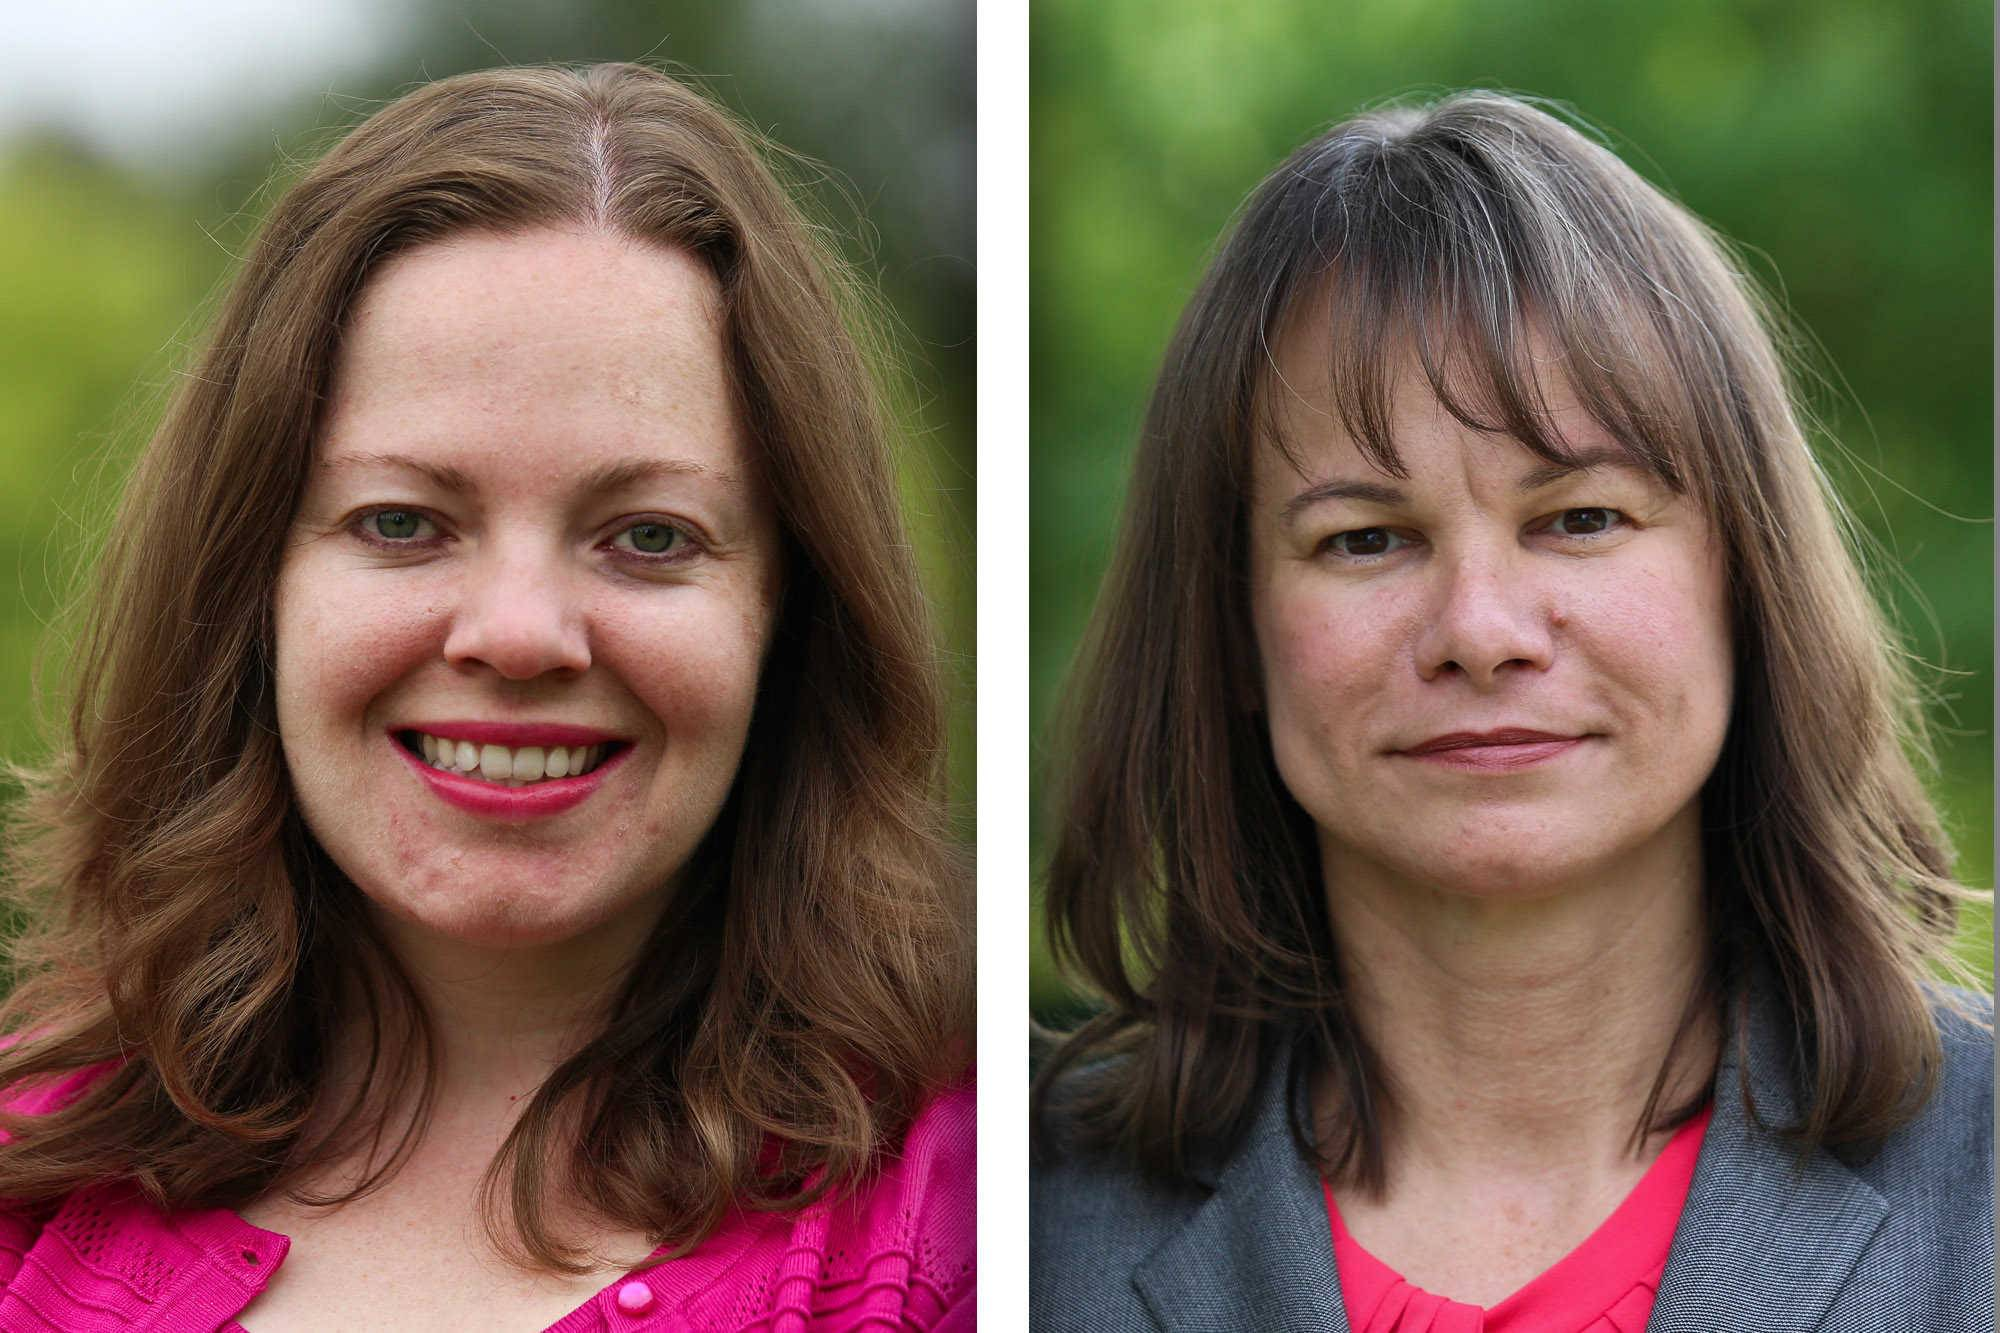 Democrat Cynthia Borbas and Republican Christine Winger are candidates for the 45th Illinois House District seat.